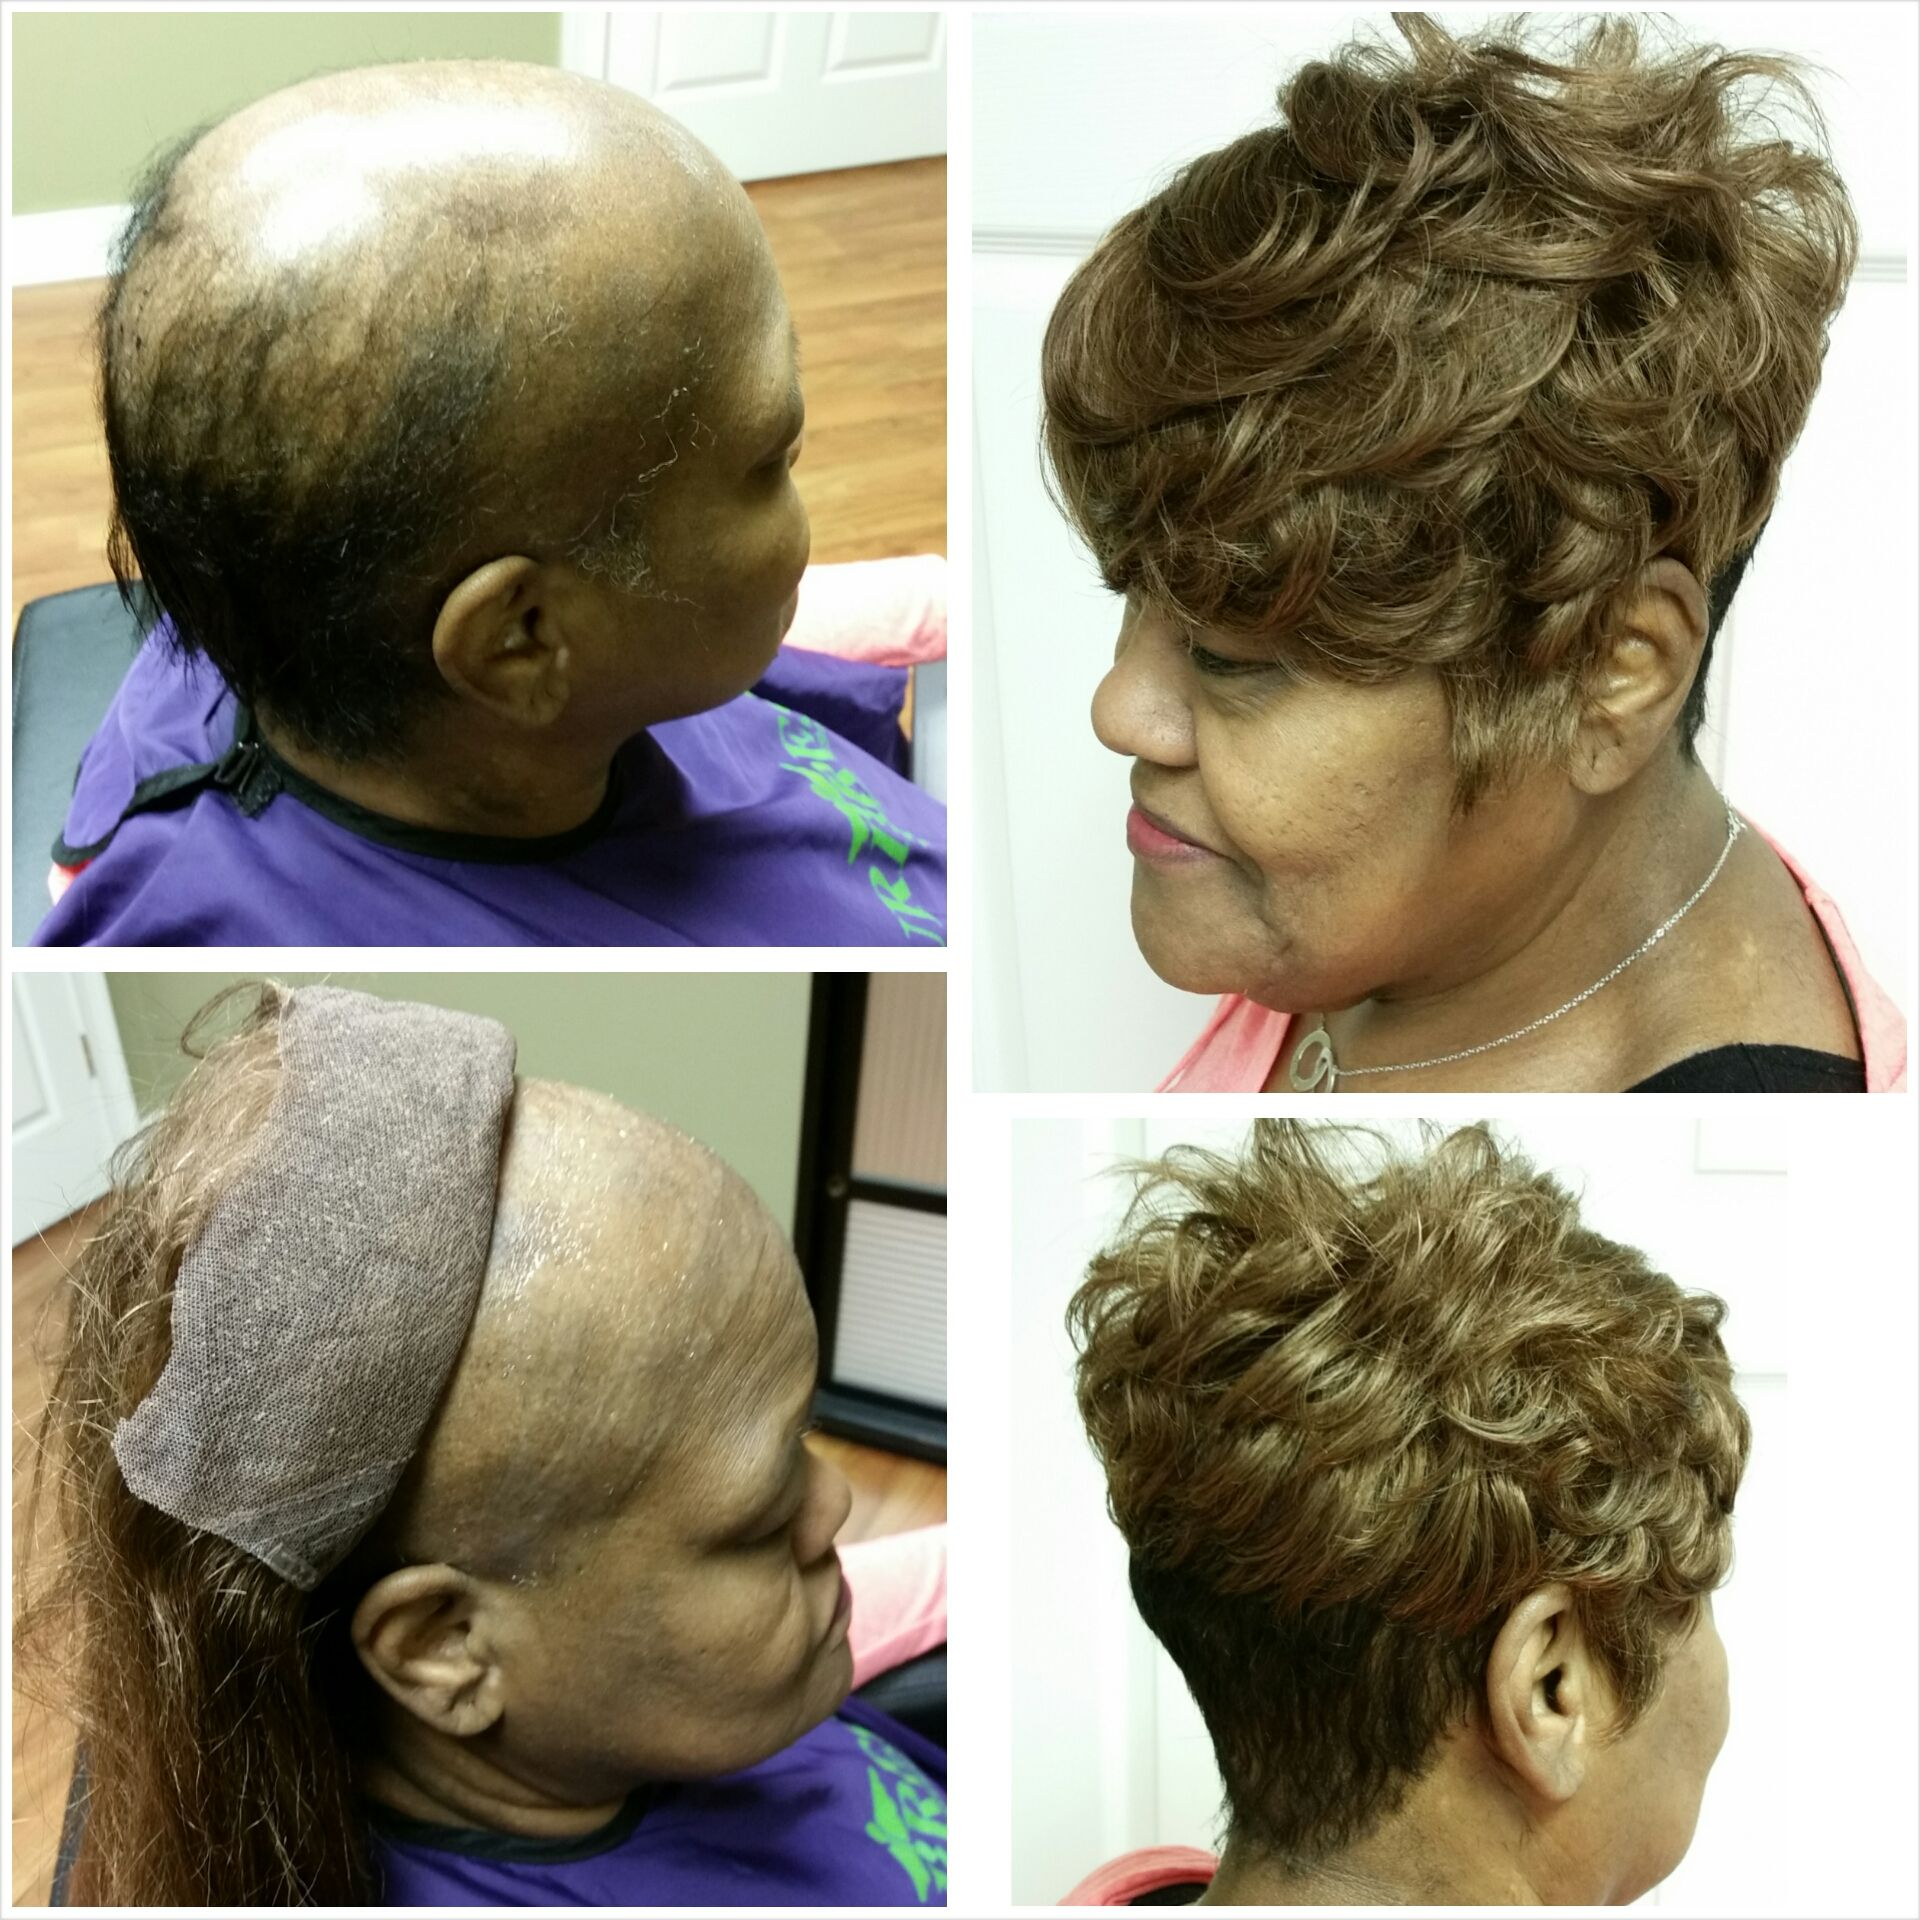 Hair Cranial Prosthesis service for permanent hair loss